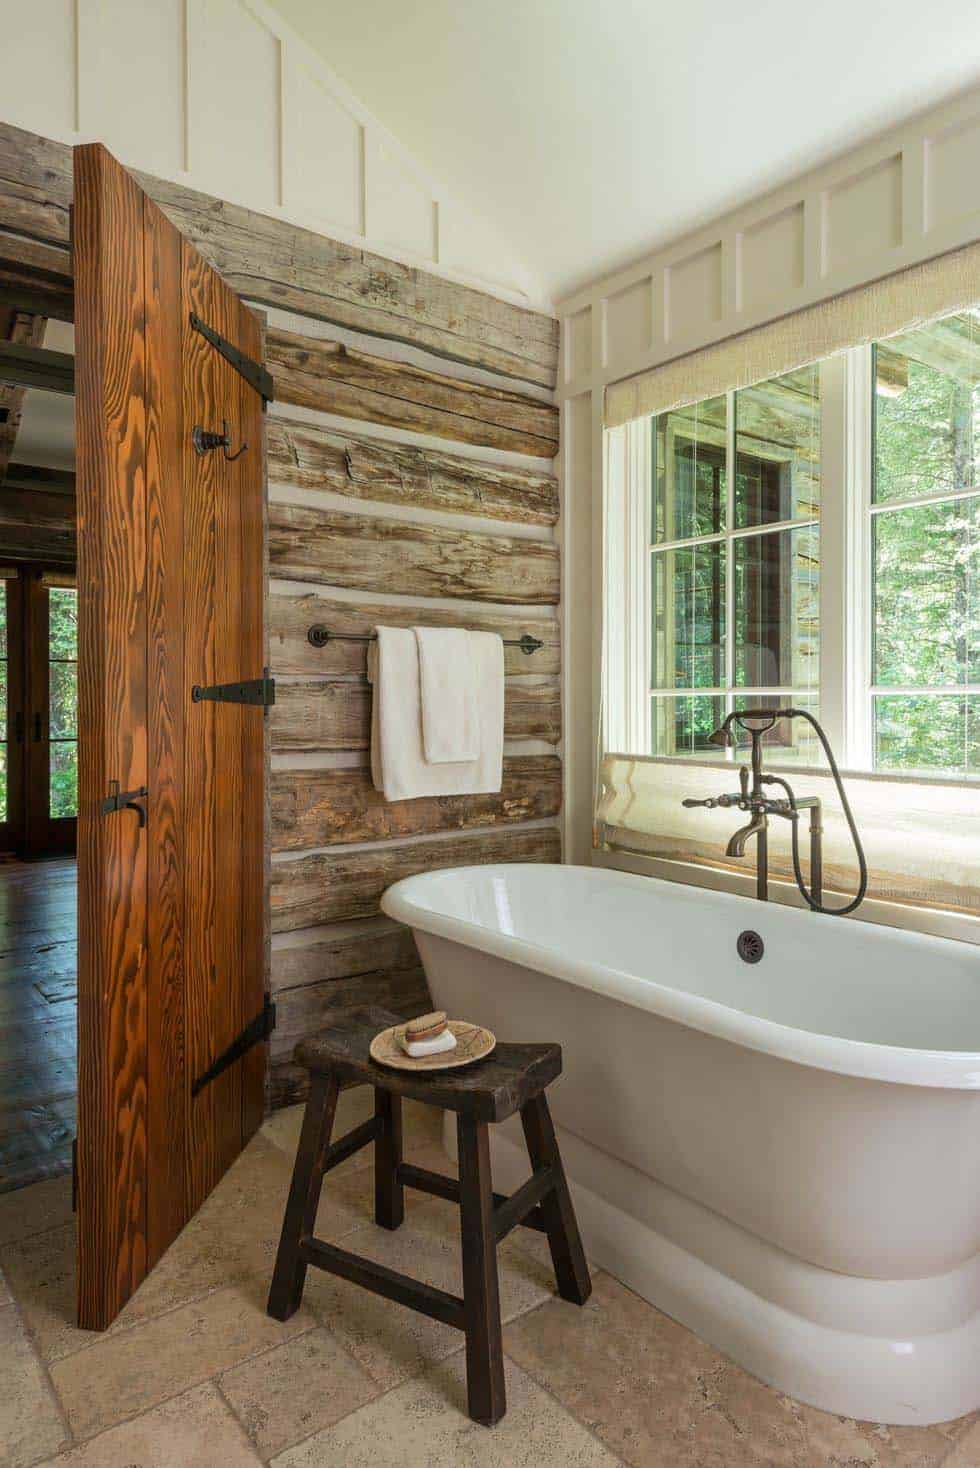 Contemporary Rustic Mountain Retreat-JLF Architects-16-1 Kindesign